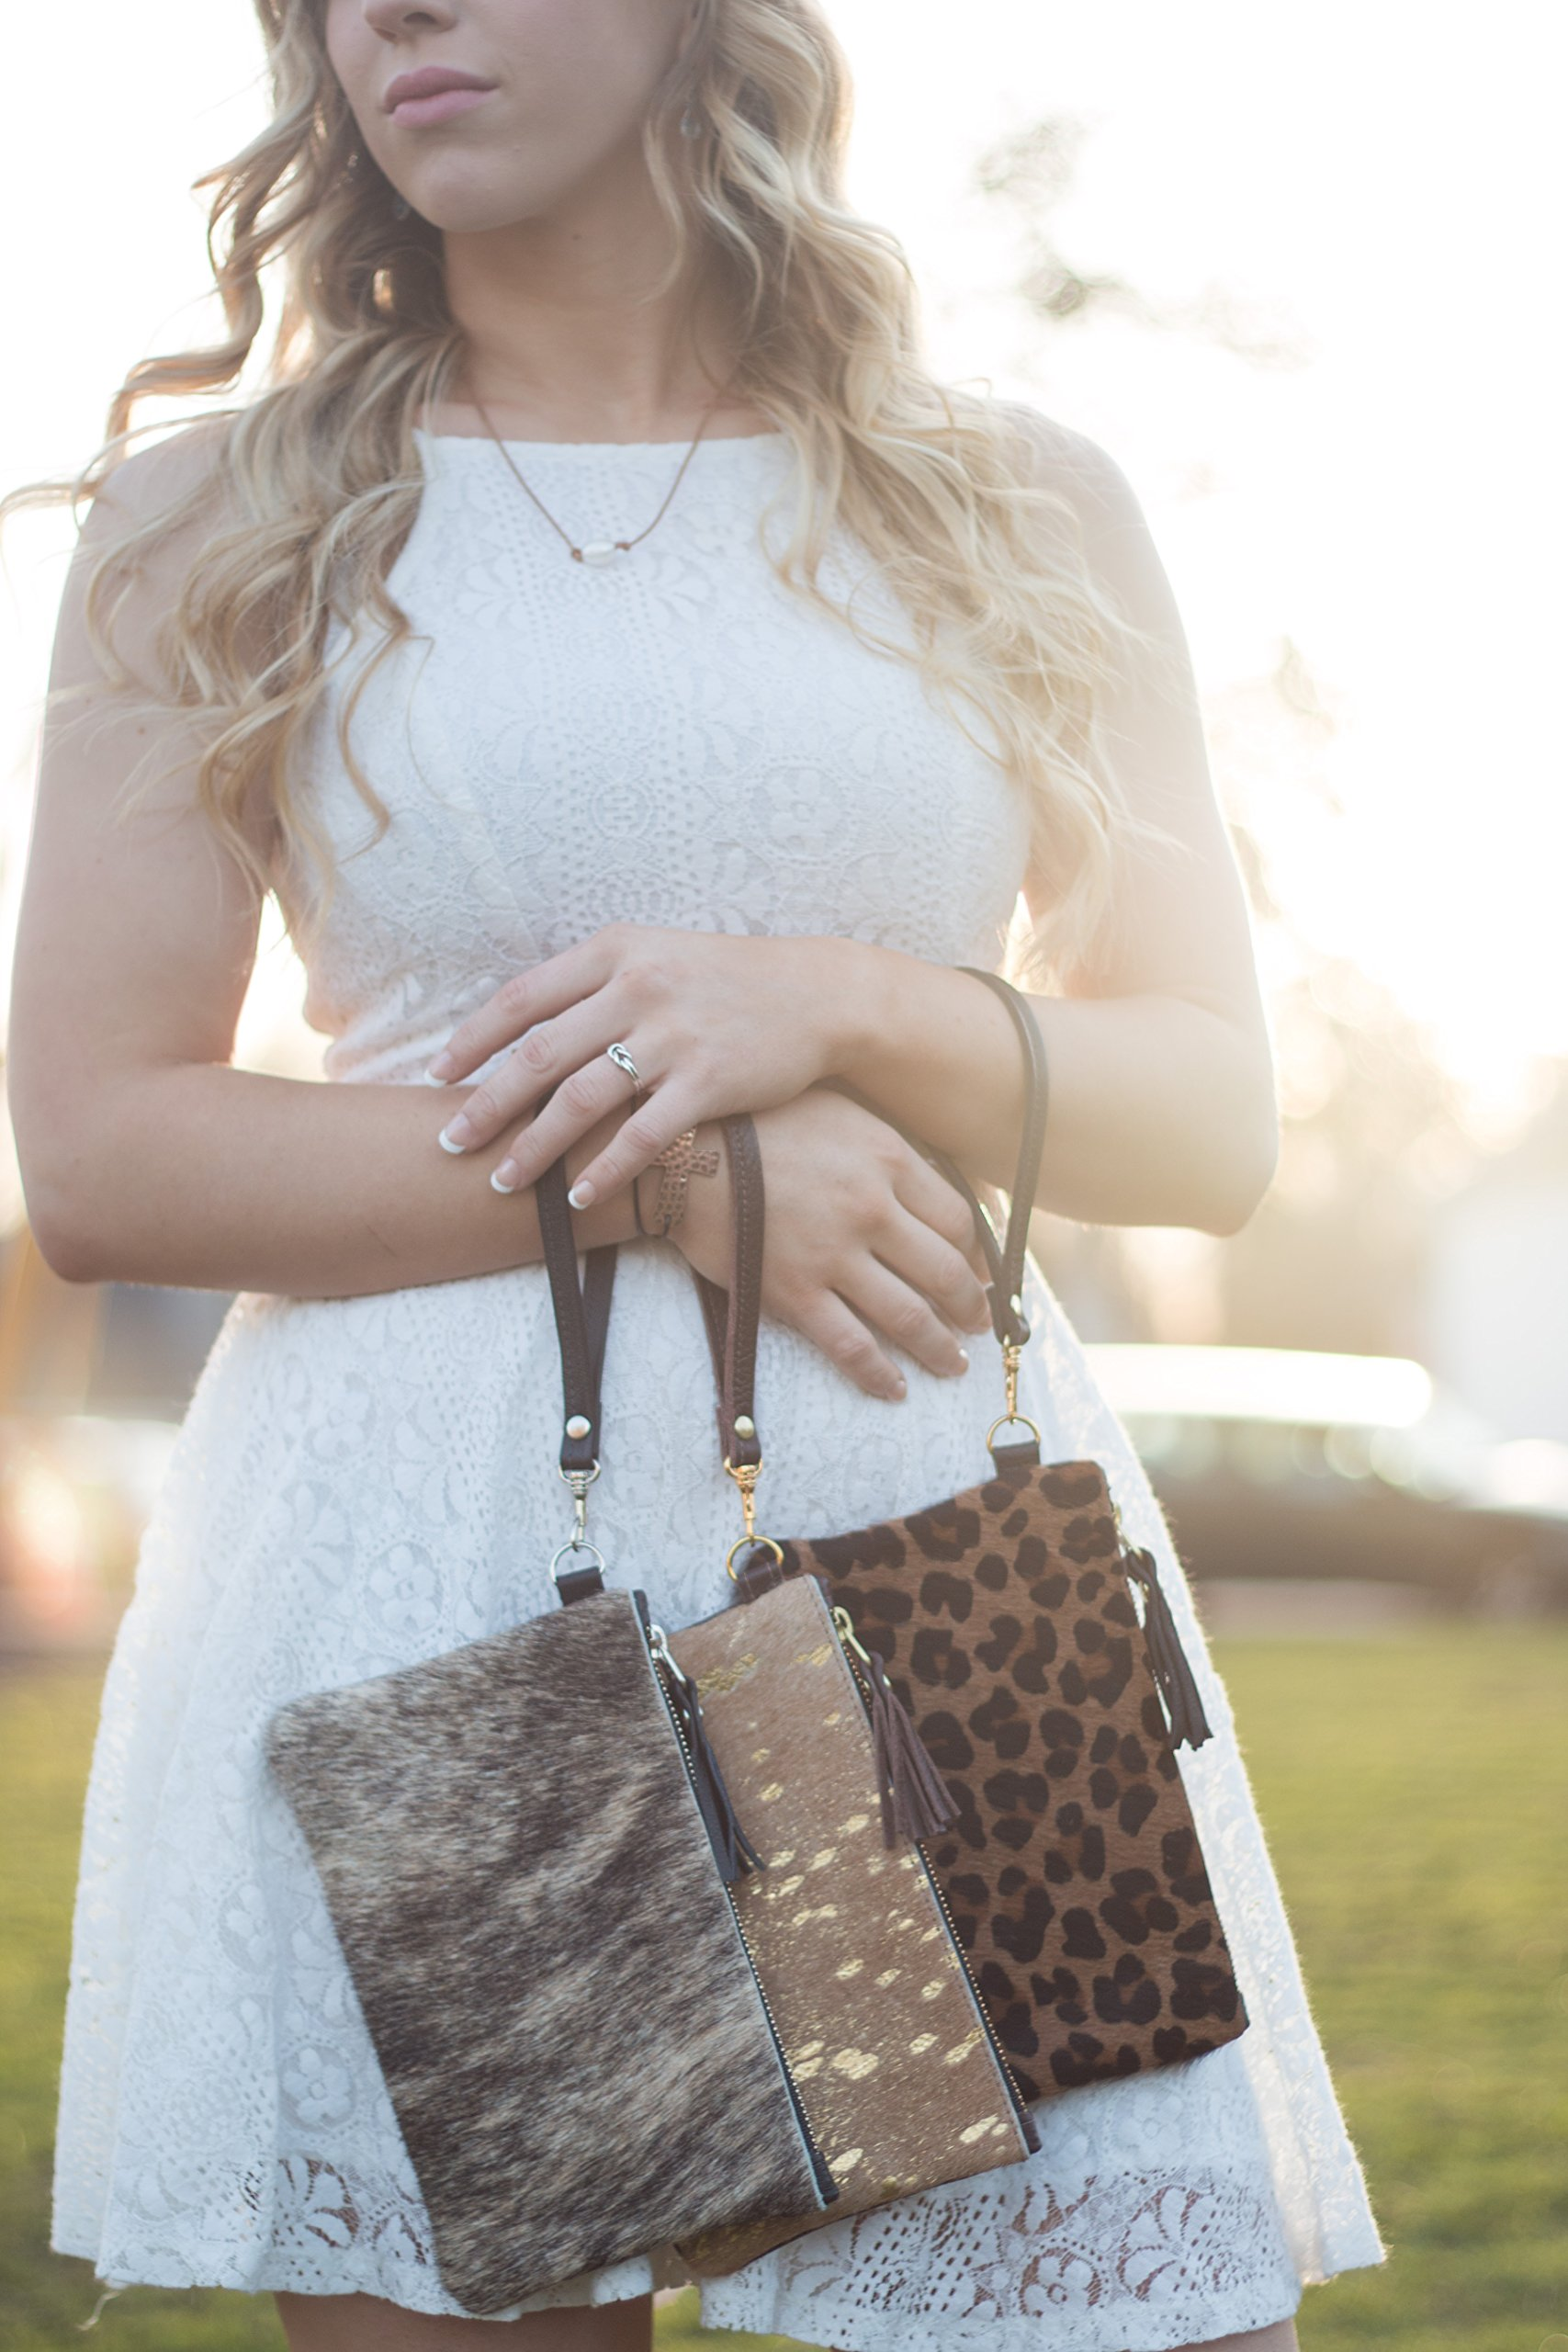 Cowhide Leather Wristlet - Brown & White